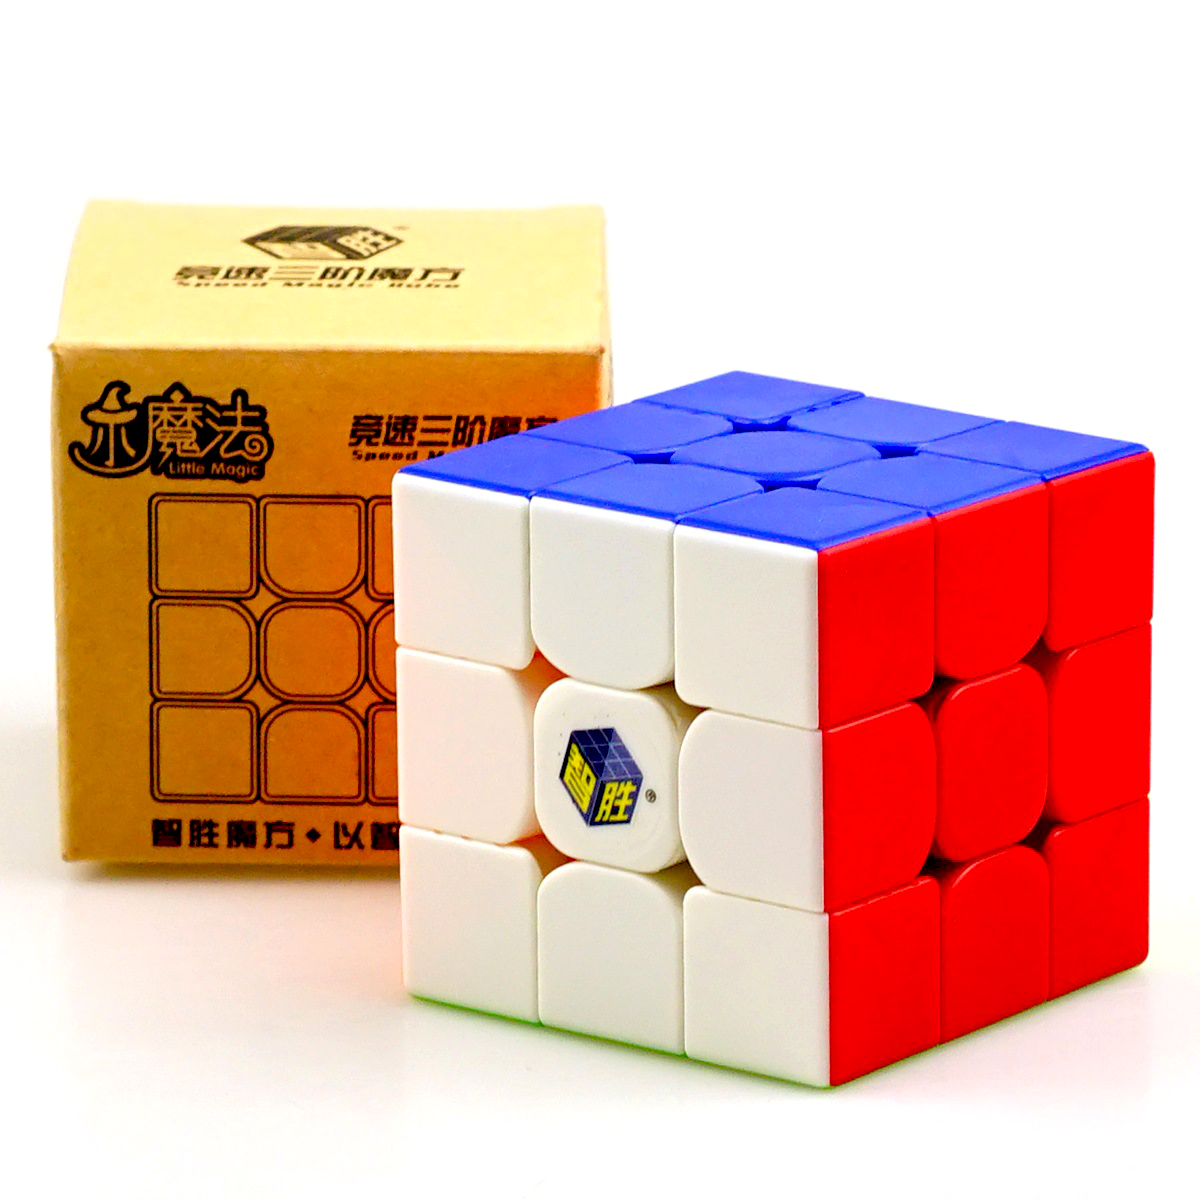 Yuxin Little Magic 3x3x3 Cube Professional 3x3 Stickerless Speed Cubes Puzzle Educational Toys Gift Cubo Magico